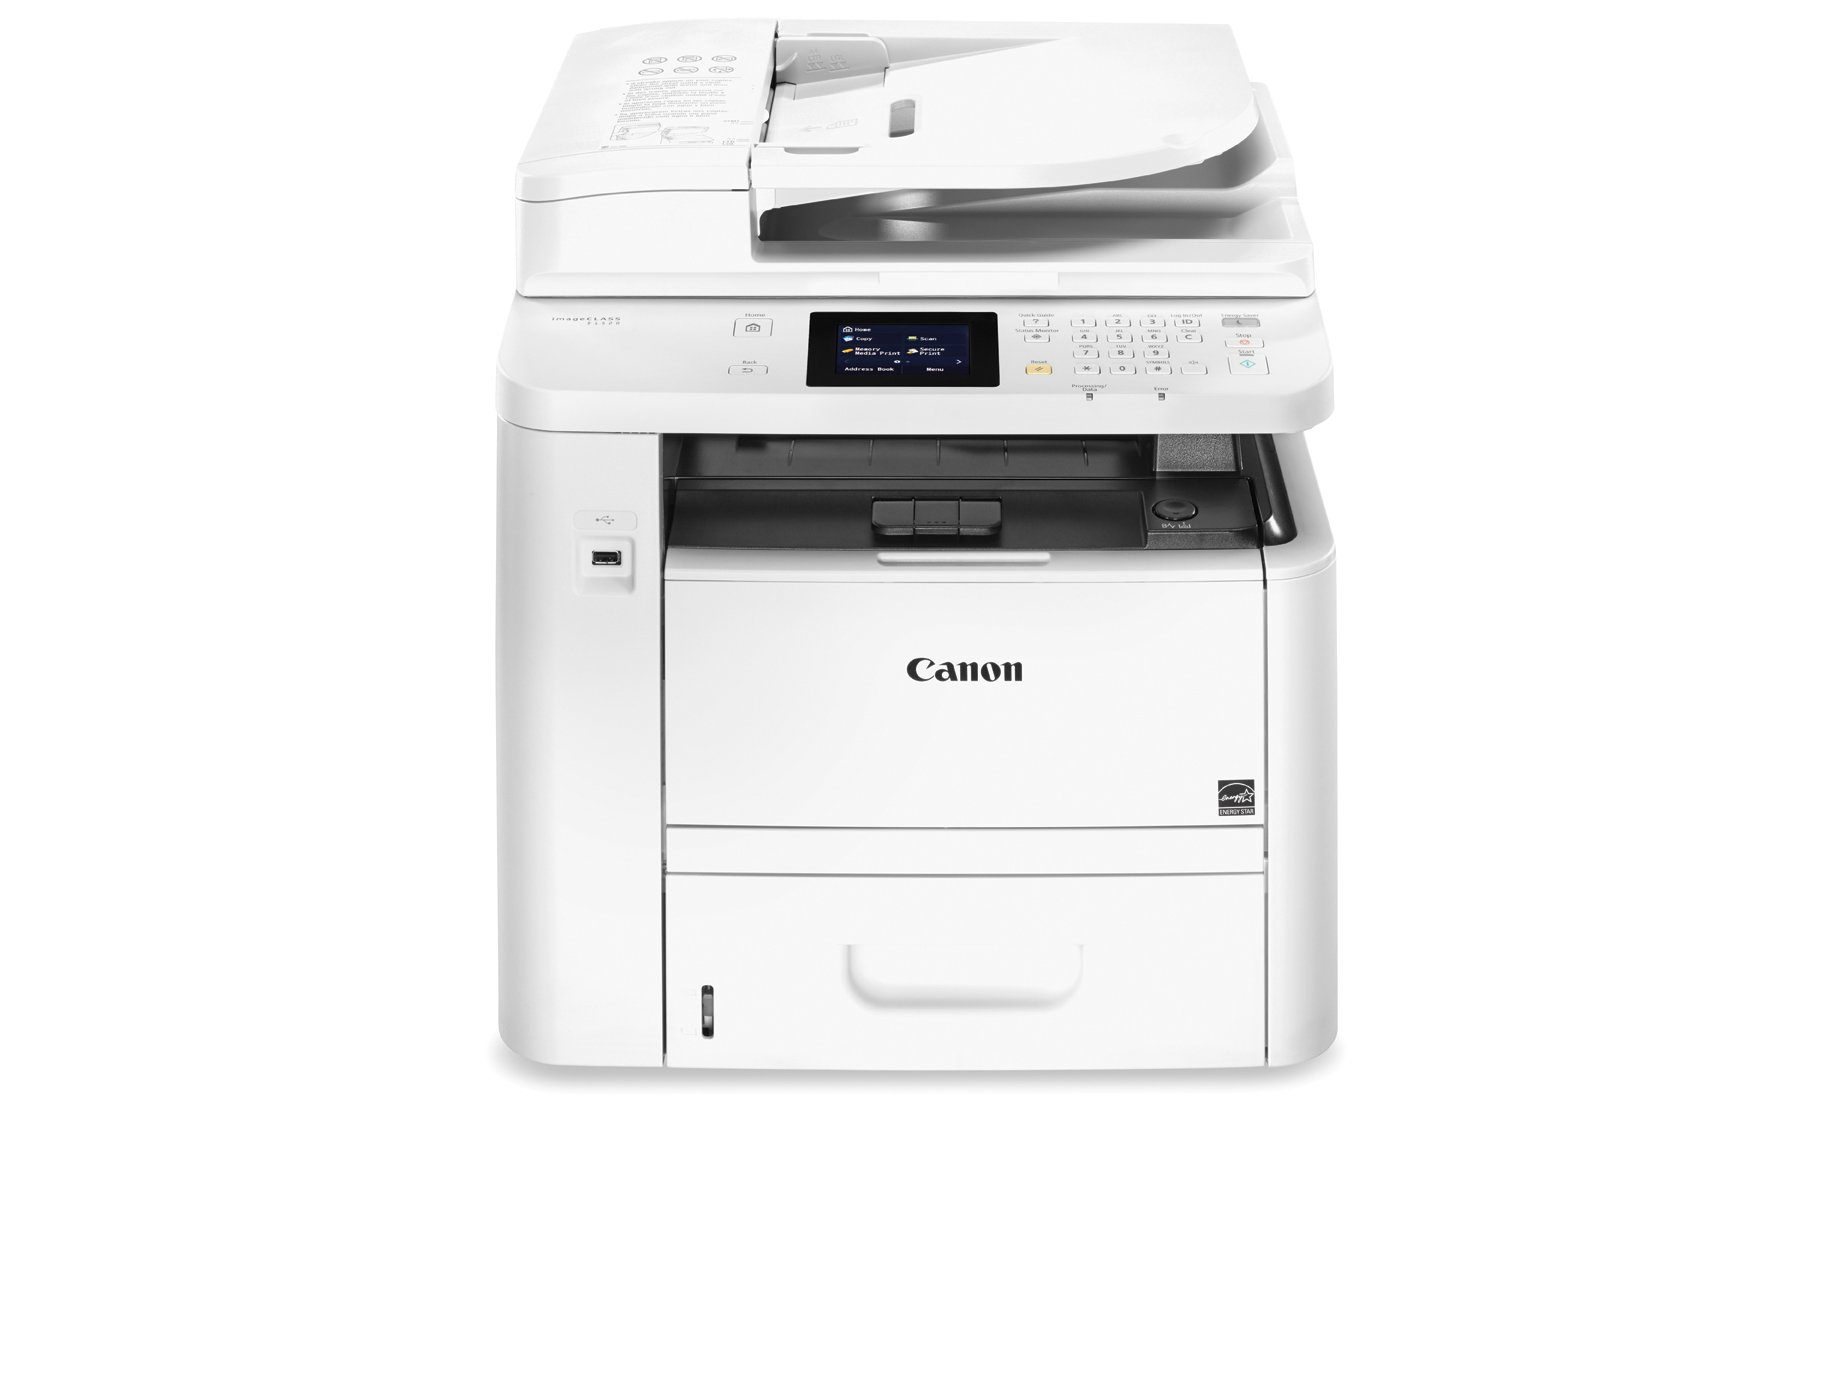 Canon Lasers Imageclass D1520 Monochrome Printer with Scanner & Copier